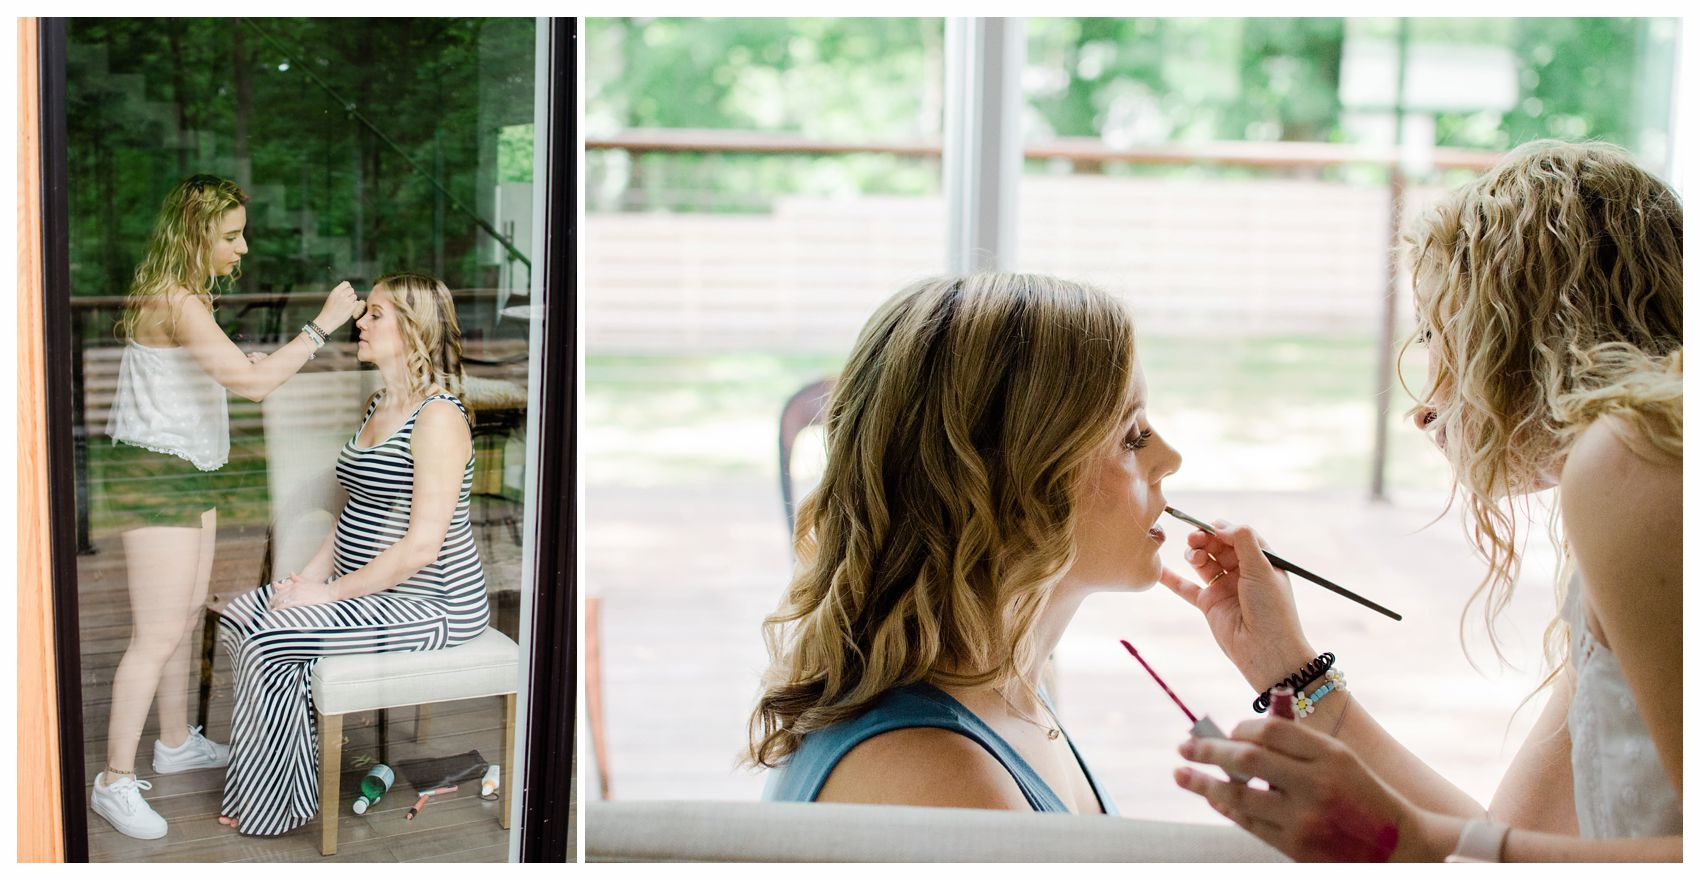 hair and make up at home before the maternity session